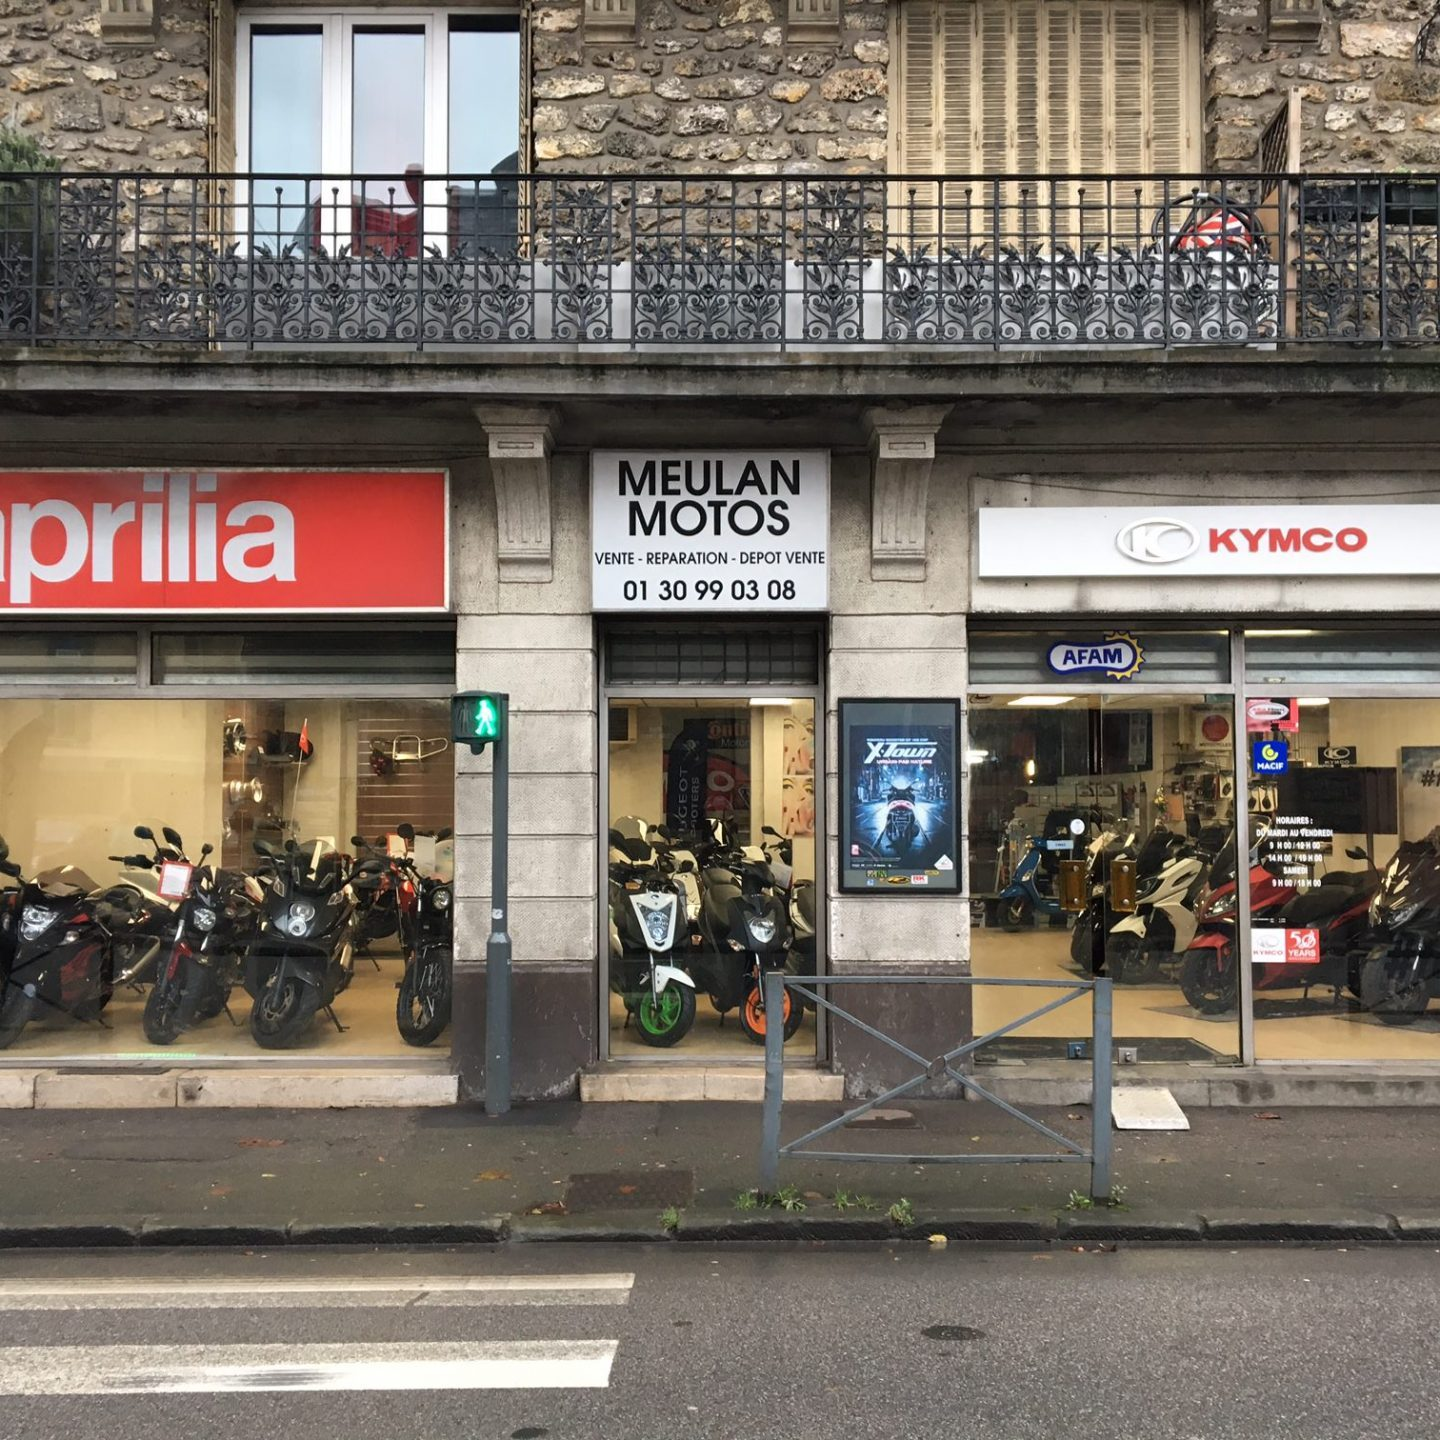 magasin de motos à Meulan